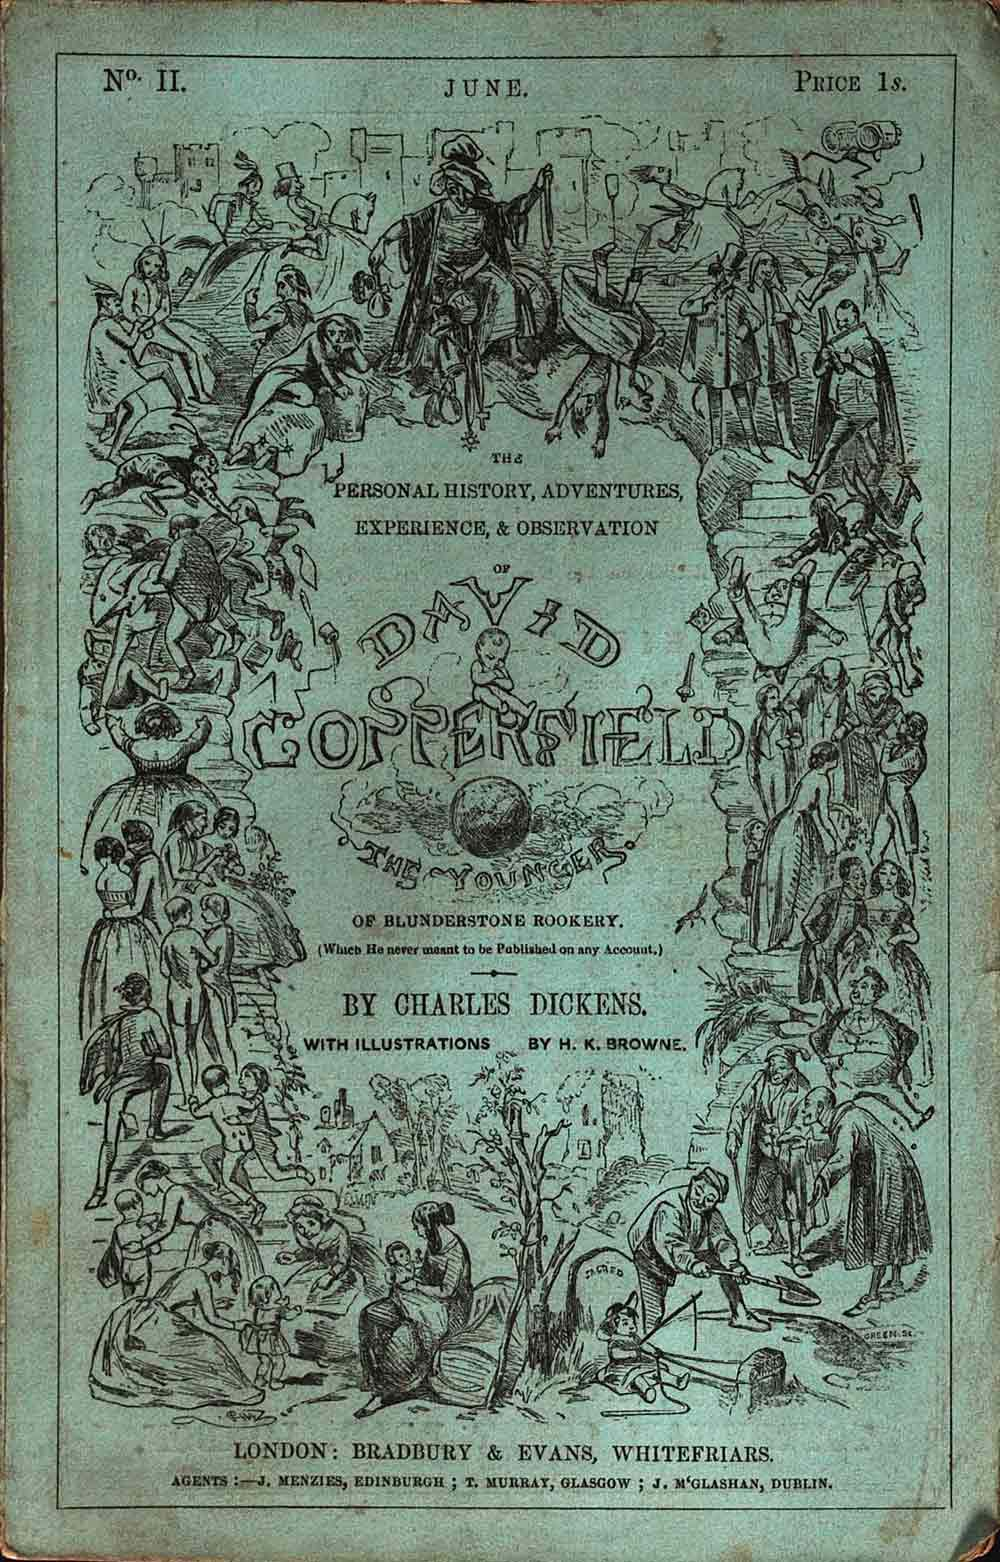 The Personal History, Adventures, Experience & Observation of David Copperfield … with Illustrations by H. K. Browne. 20 numbers in 19 monthly parts. London: Bradbury & Evans, 1849–1850